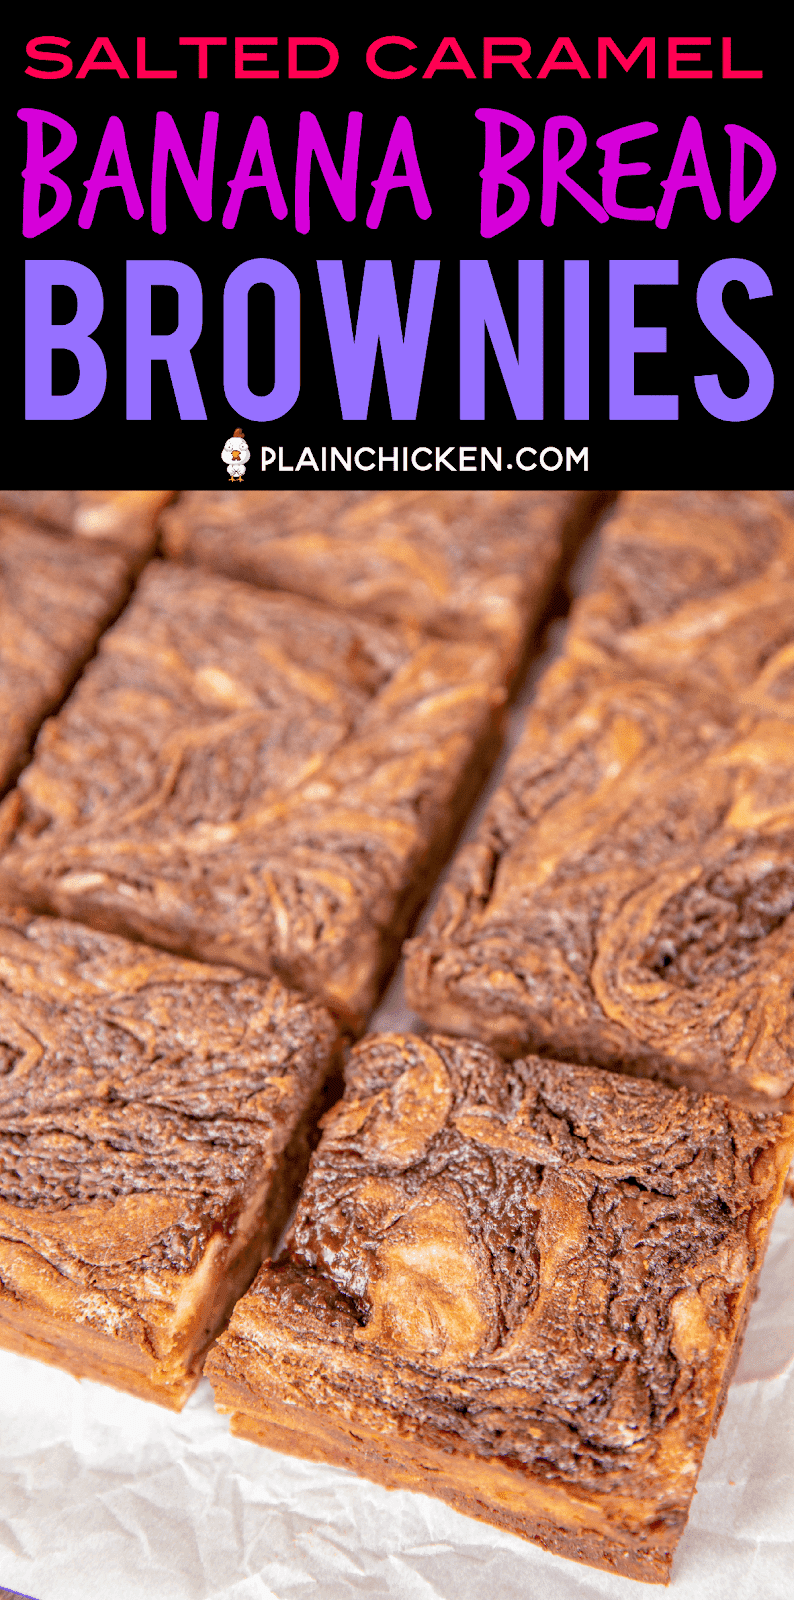 Salted Caramel Banana Bread Brownies